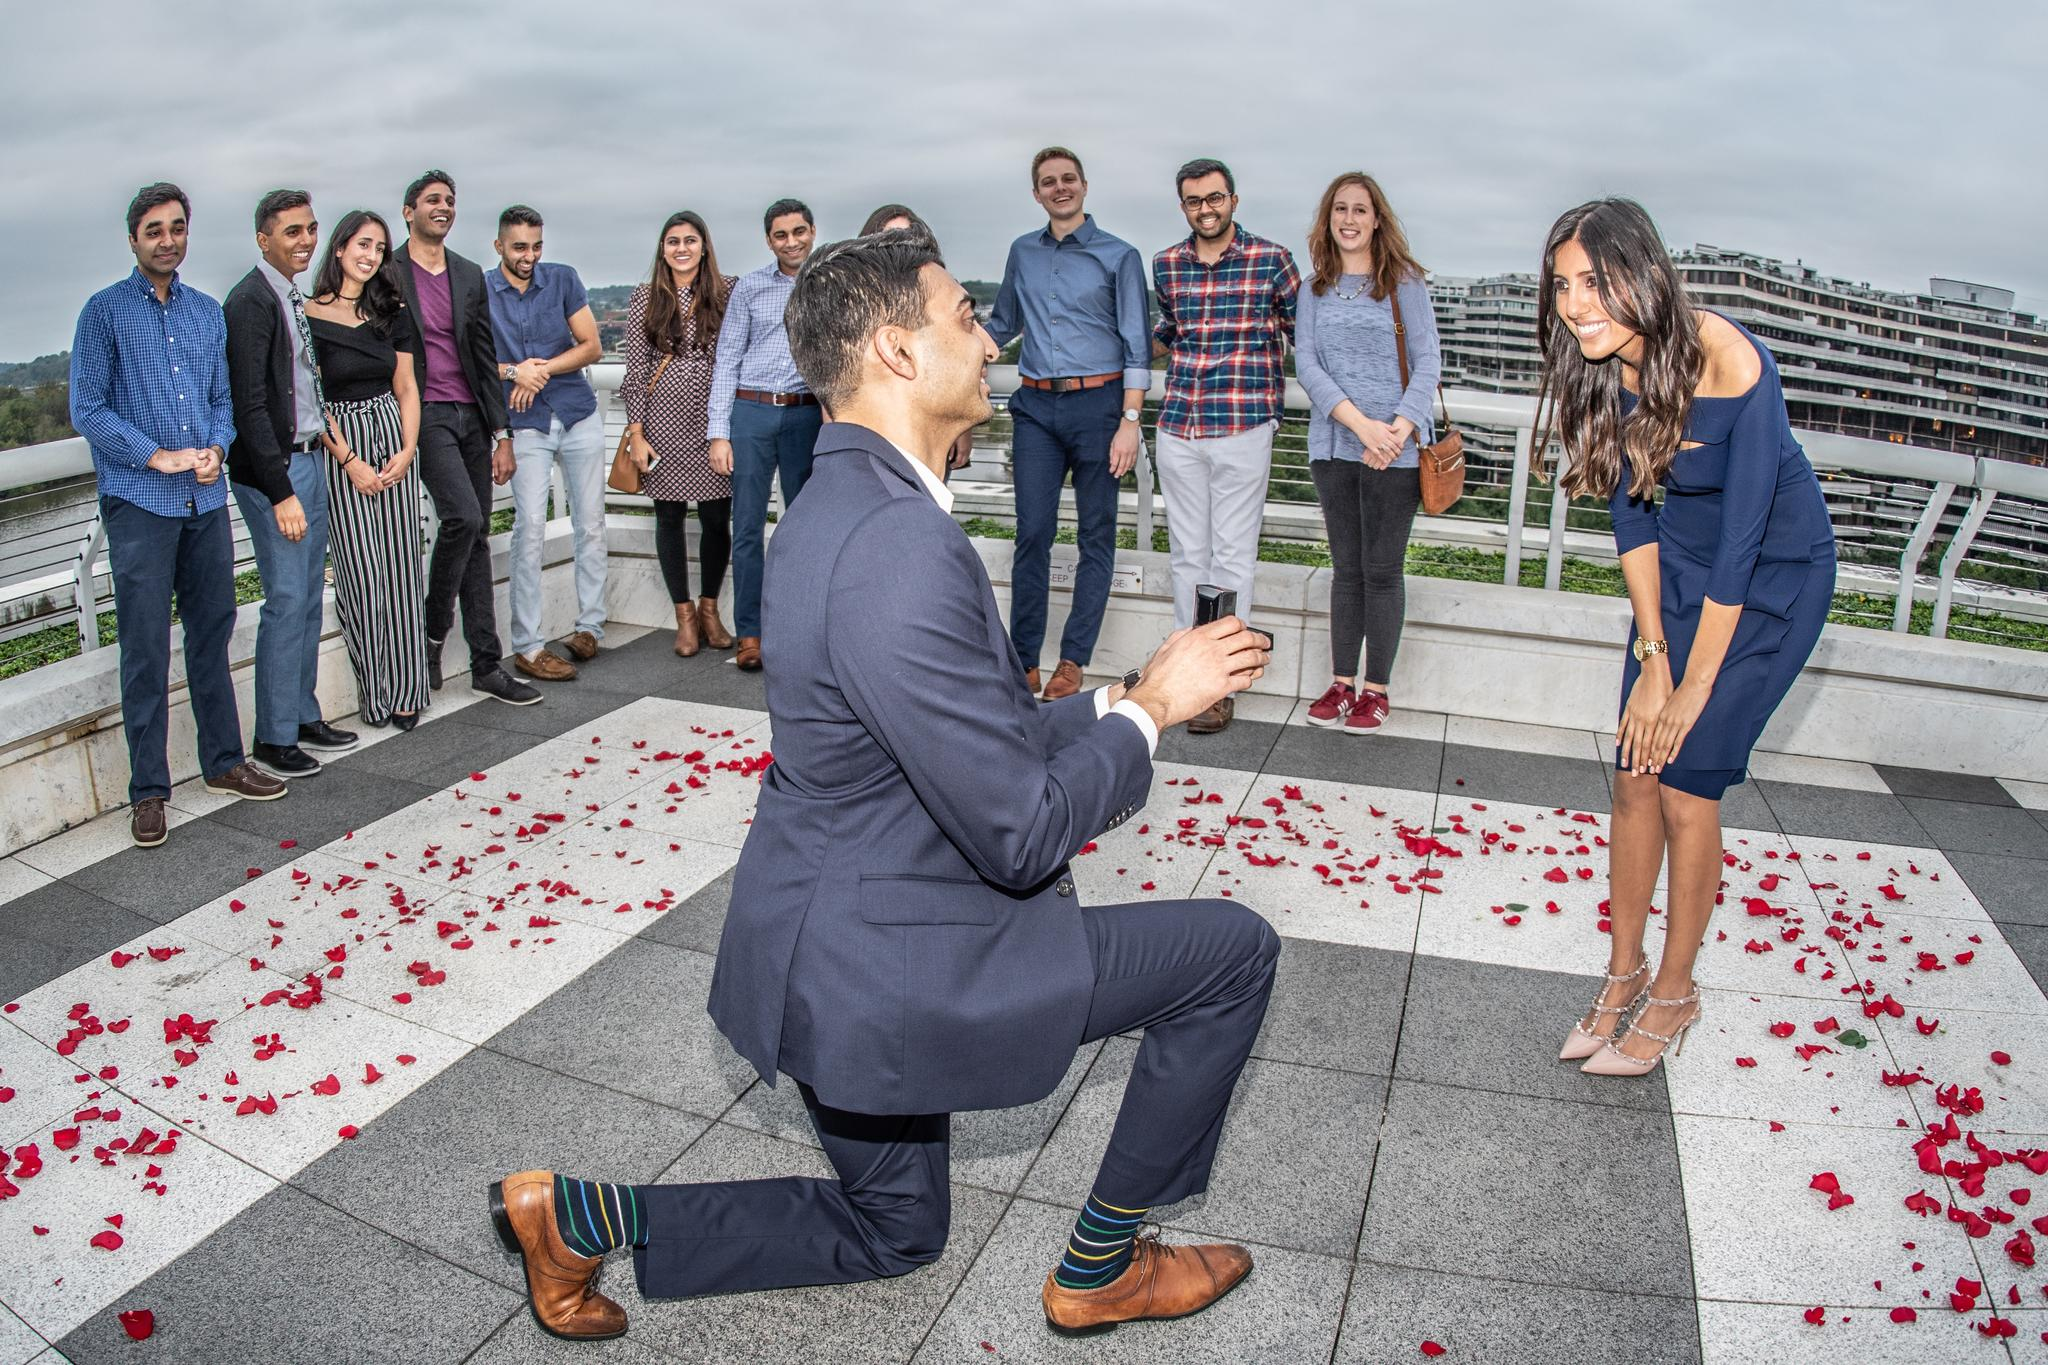 Kennedy Center Rooftop, Proposal - October 2018